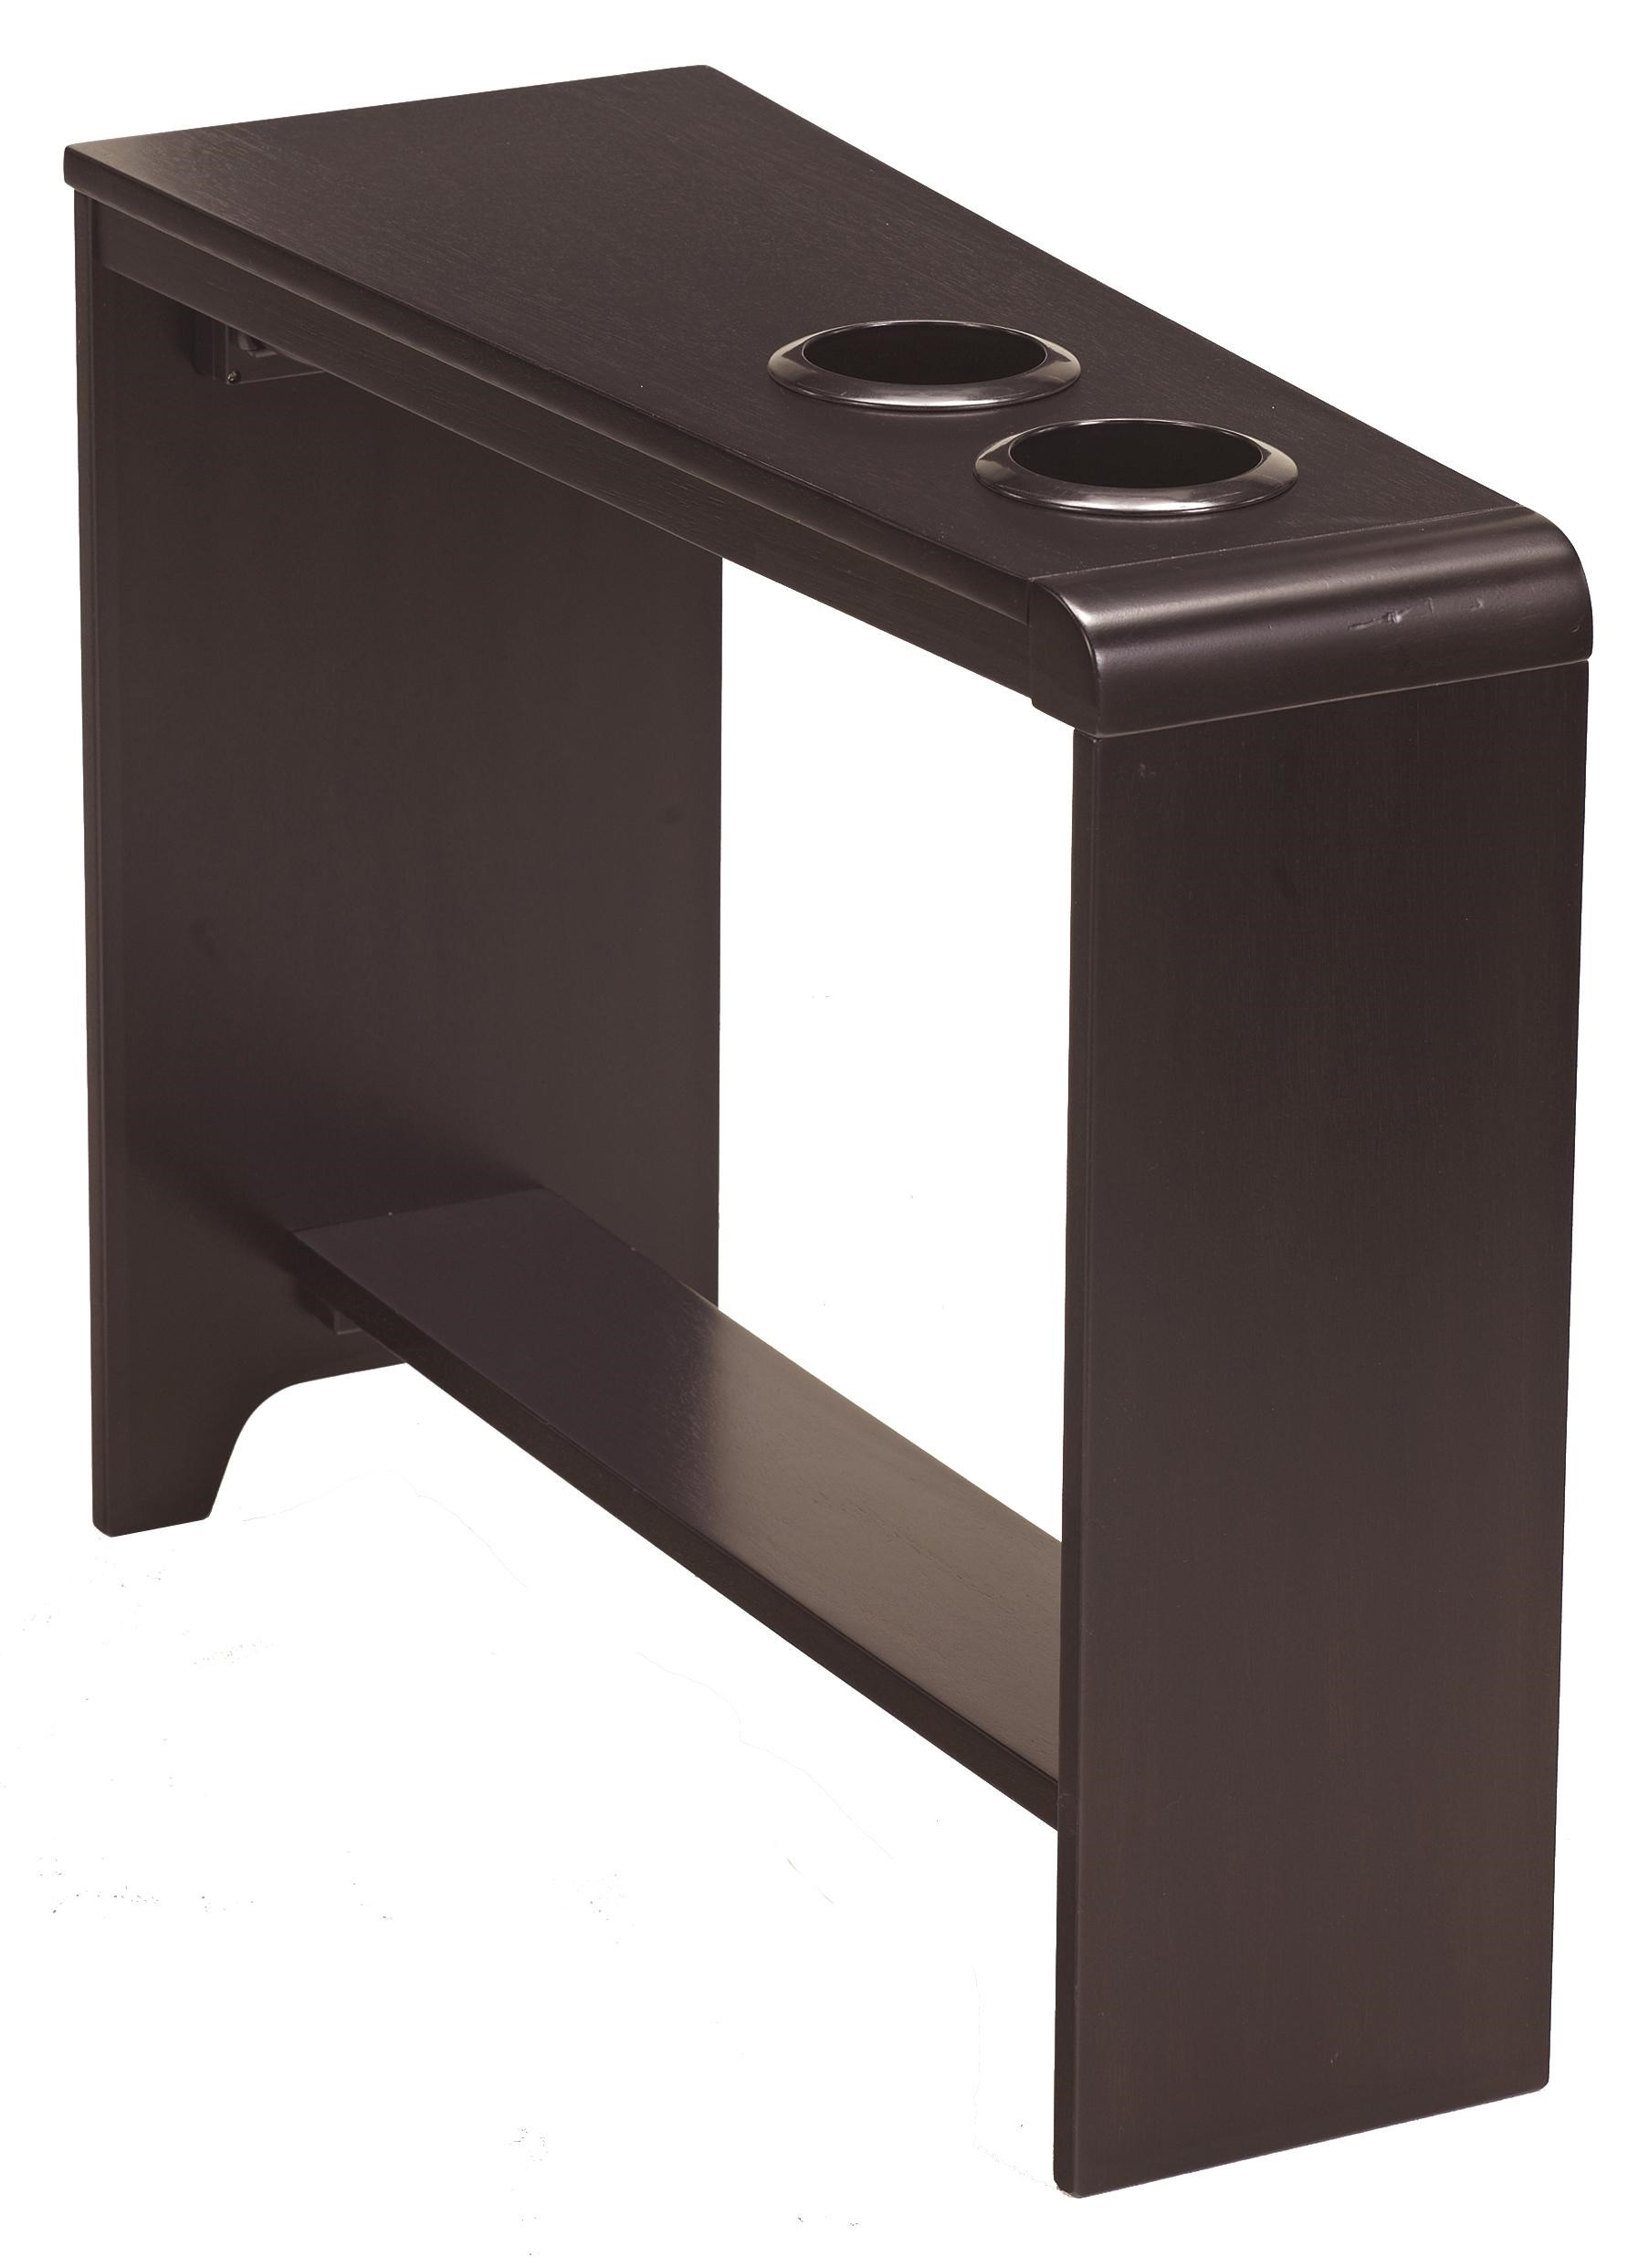 Signature Design By Ashley Carlyle Chair Side End Table With 2 Cup Holders,  Powerstrip,